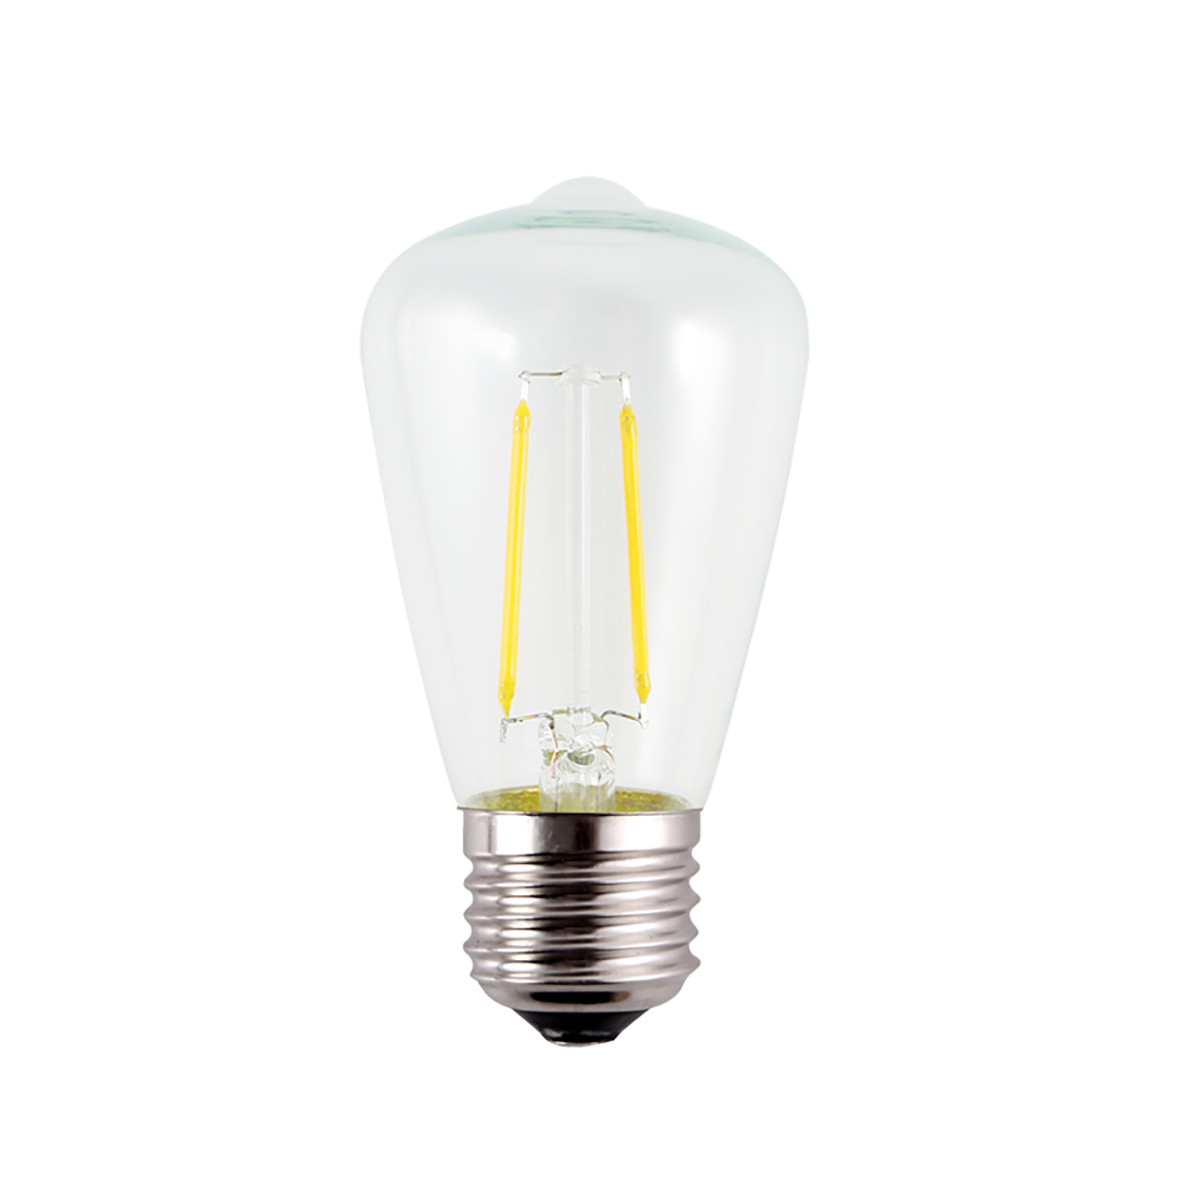 2W Filament LED T-Shape Light Bulb Light ST48 Chandelier Bulb with E26 Base 20W Equivalent Halogen Replacement